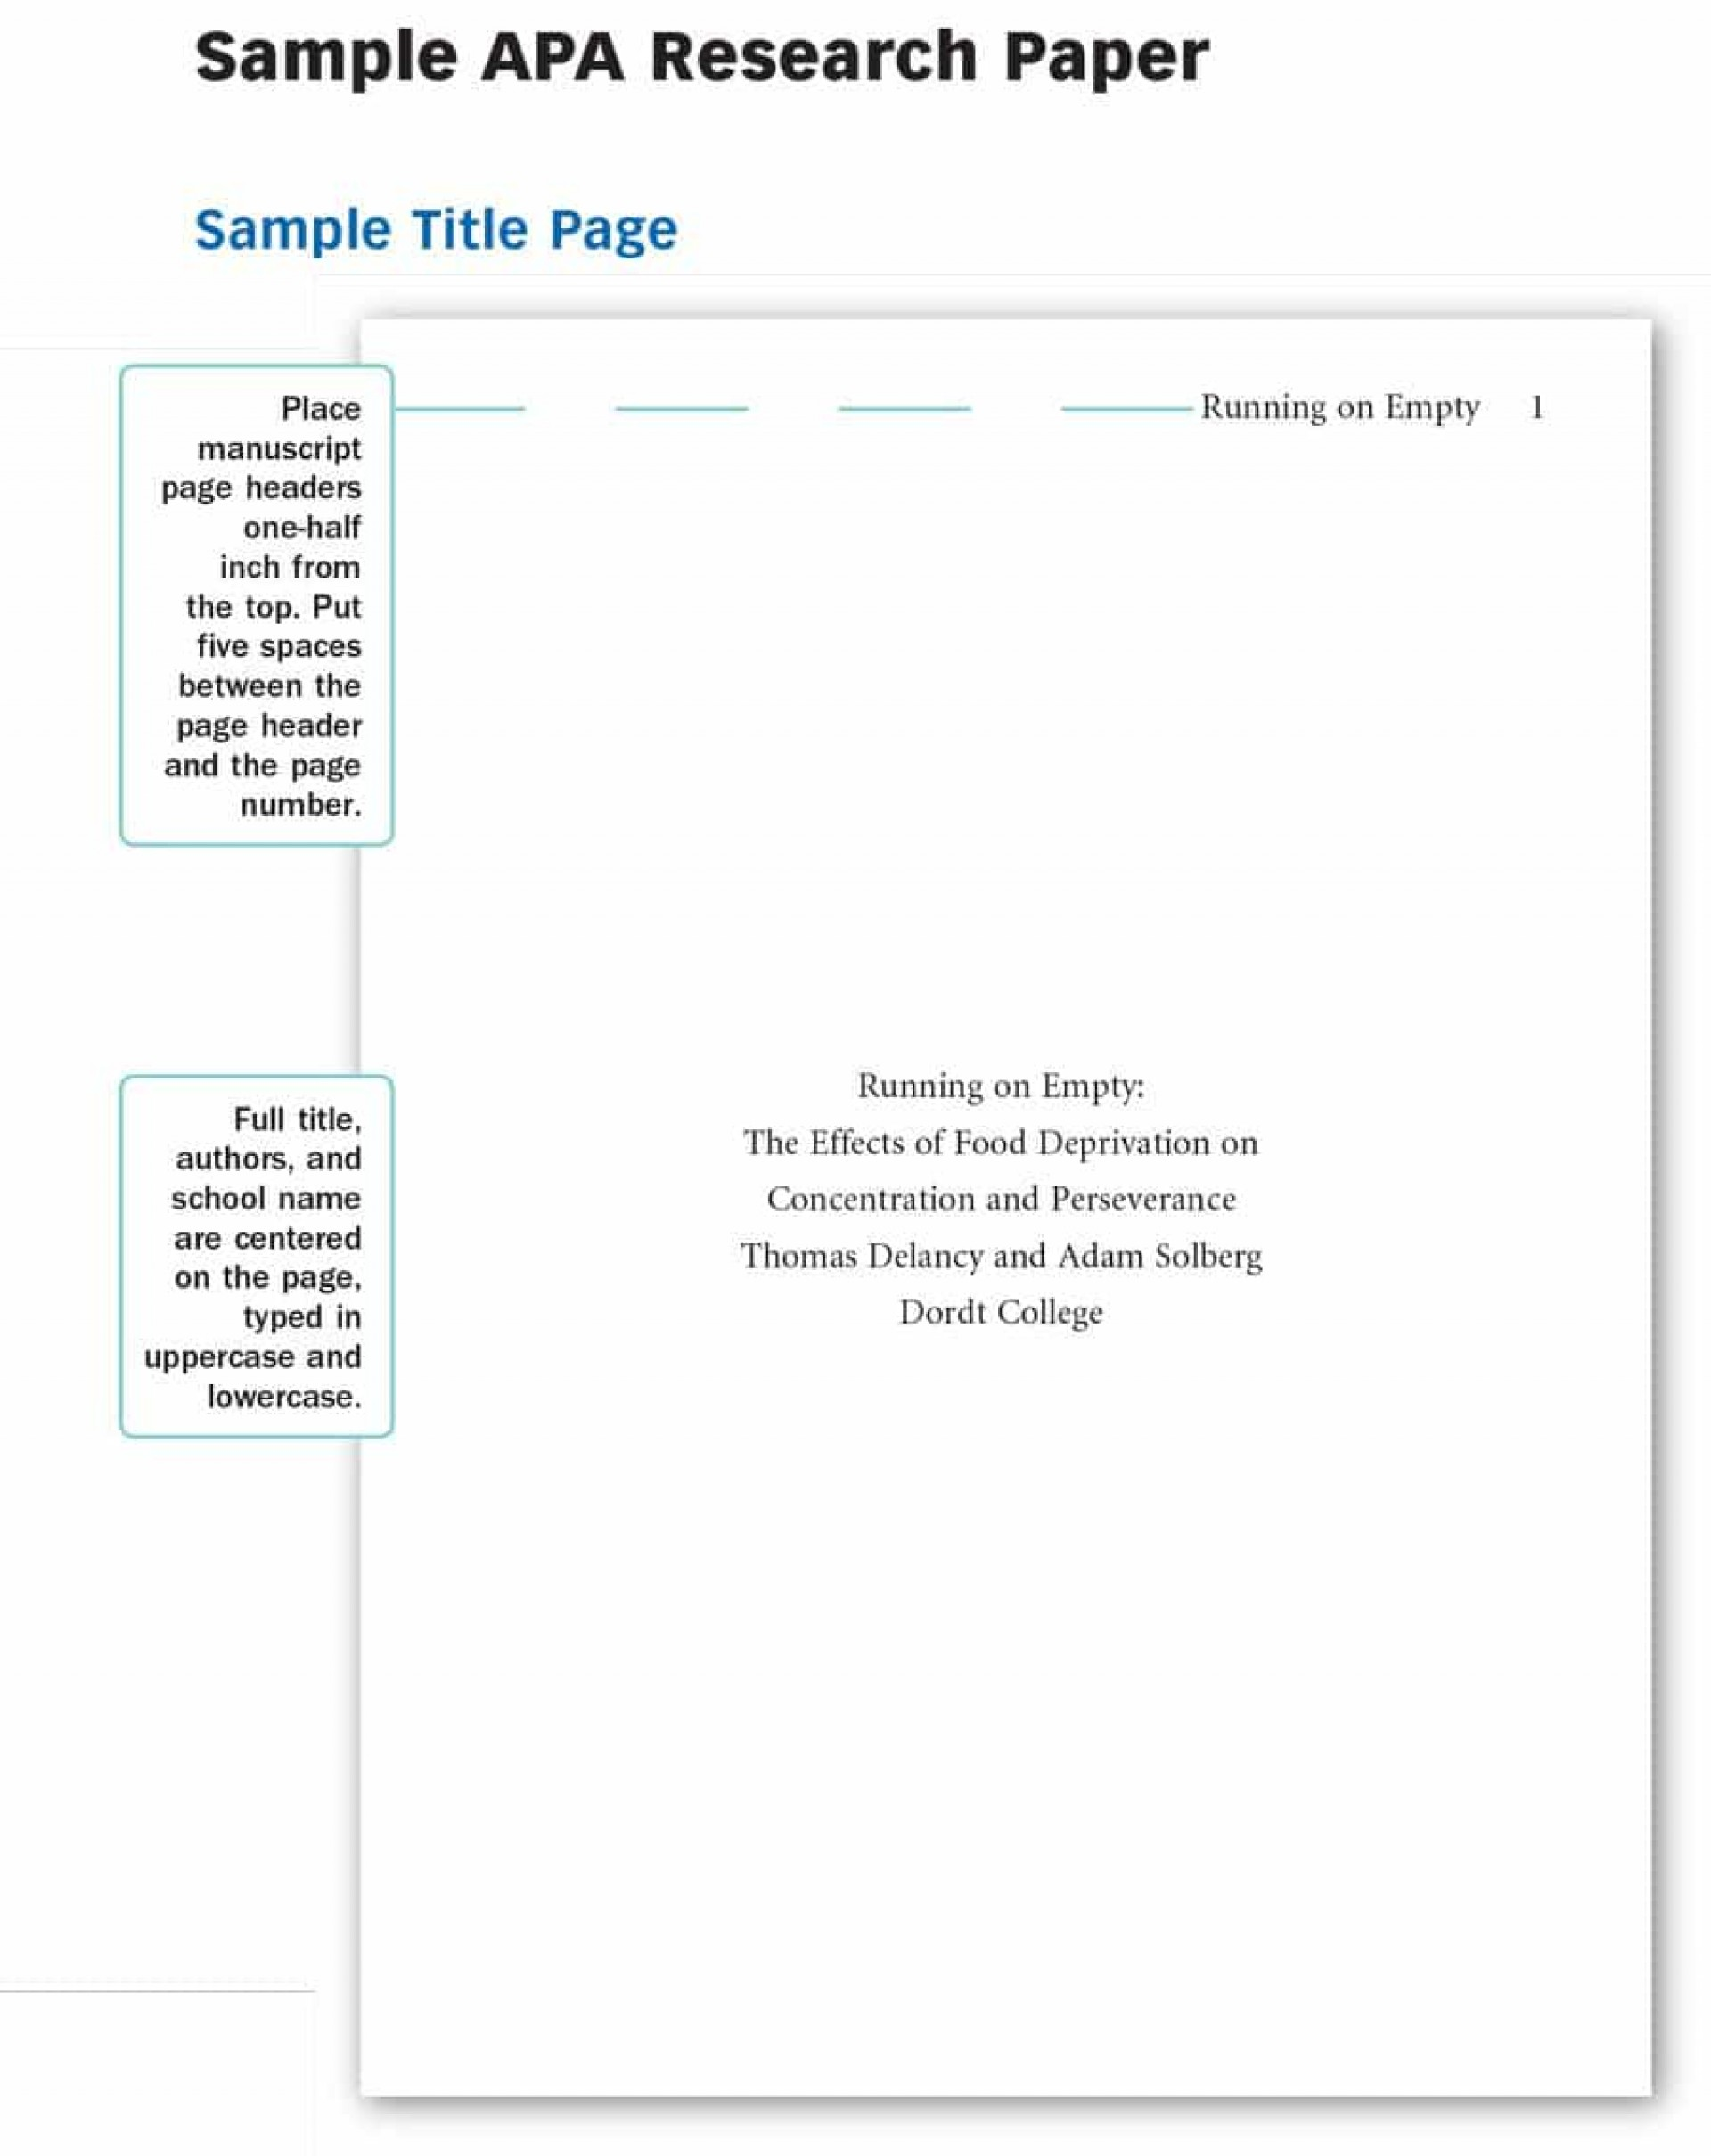 023 Research Paper Apa Template Style Guide For Writing Best Papers 1920